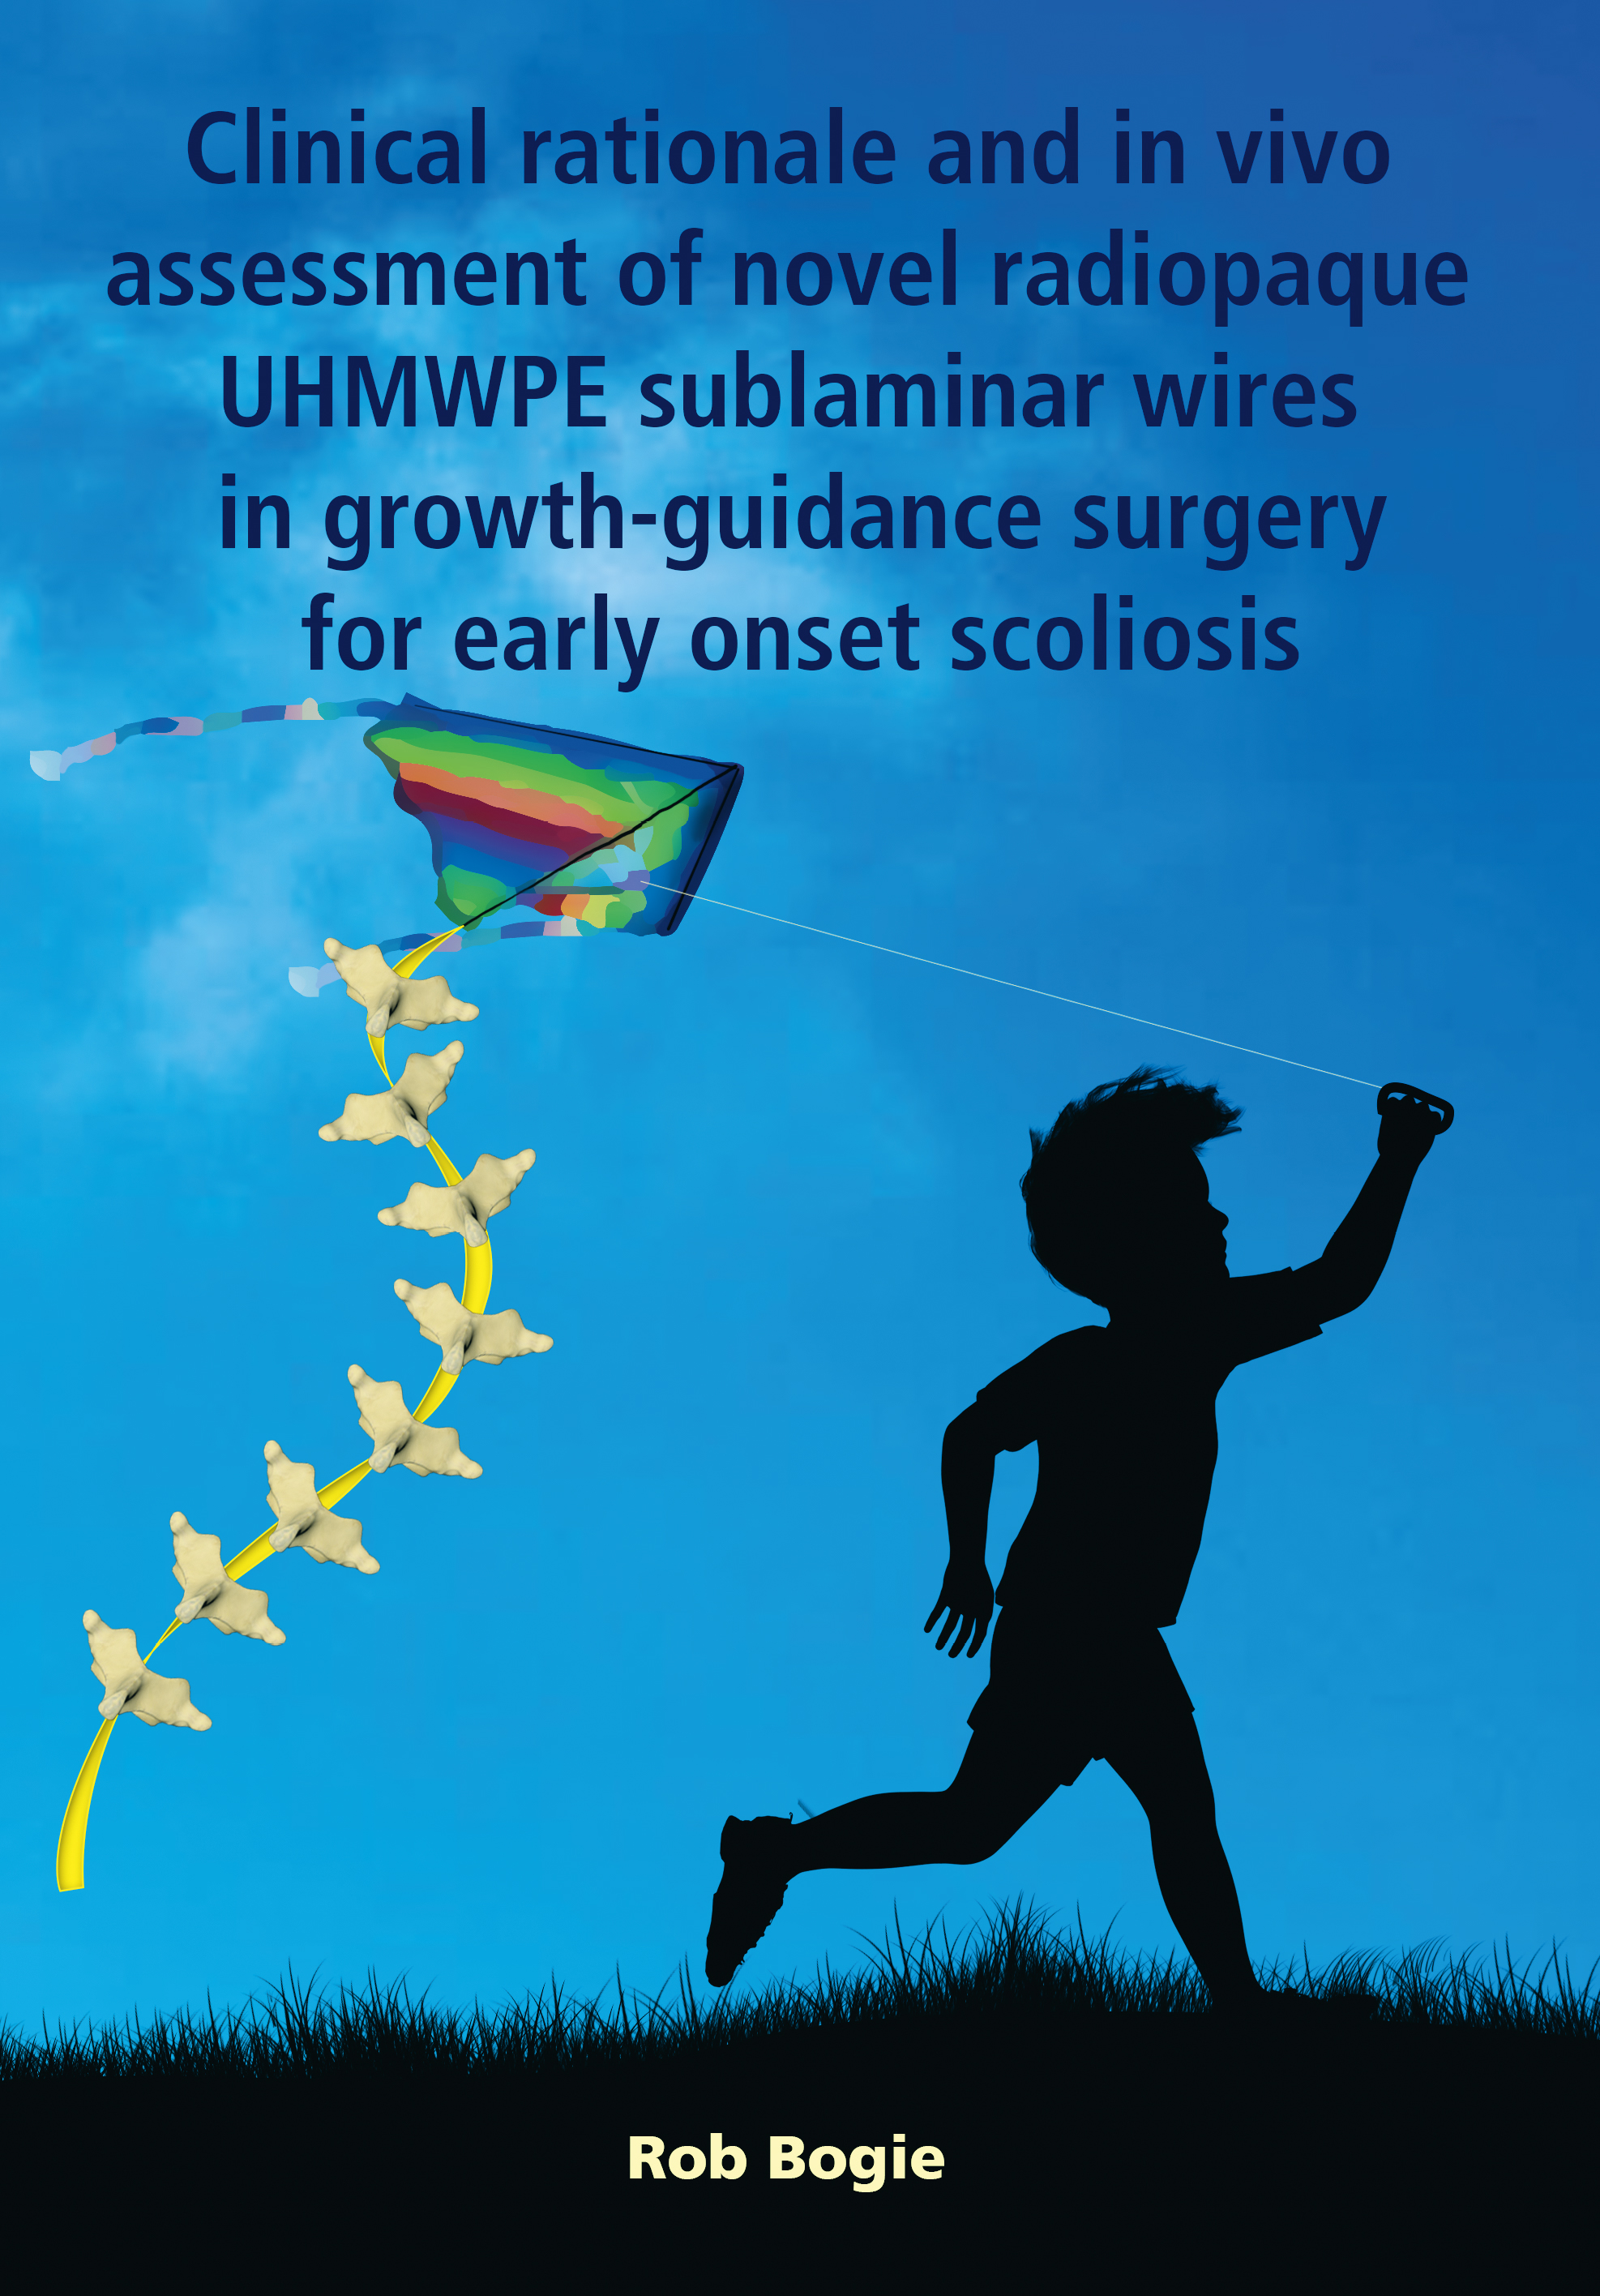 Clinical rationale and in vivo assessment of novel radiopaque UHMWPE sublaminar wires